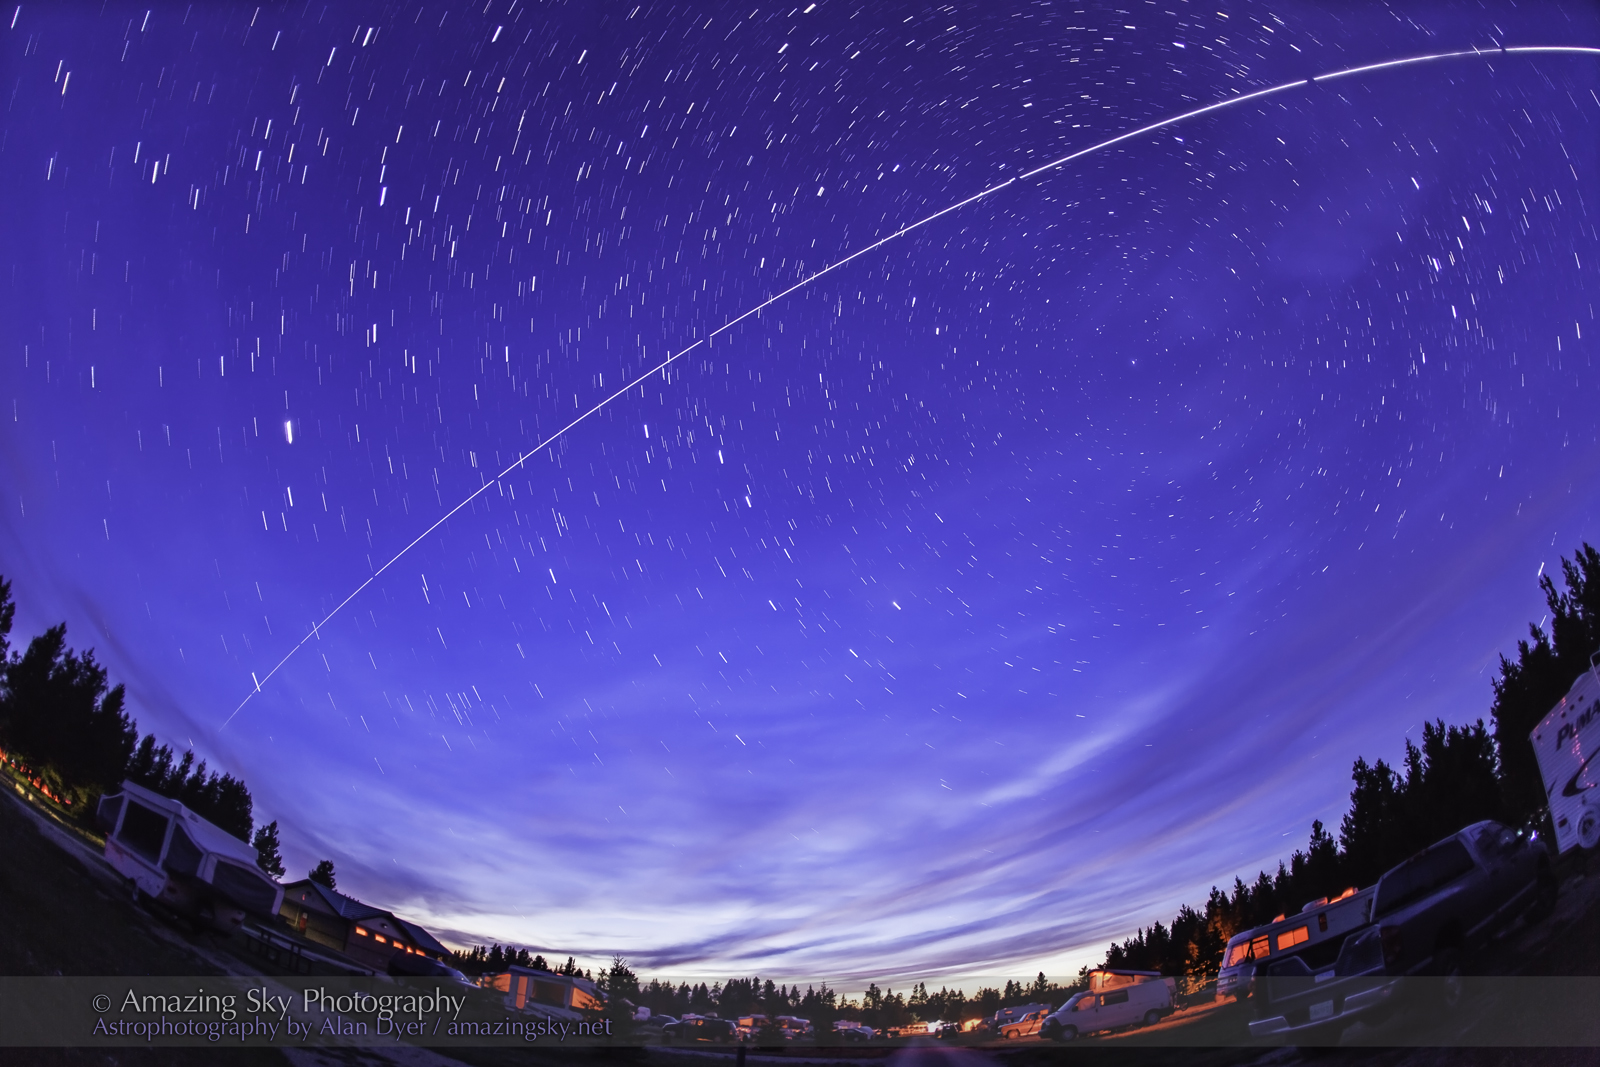 ISS Pass Over Star Party (August 10, 2013)